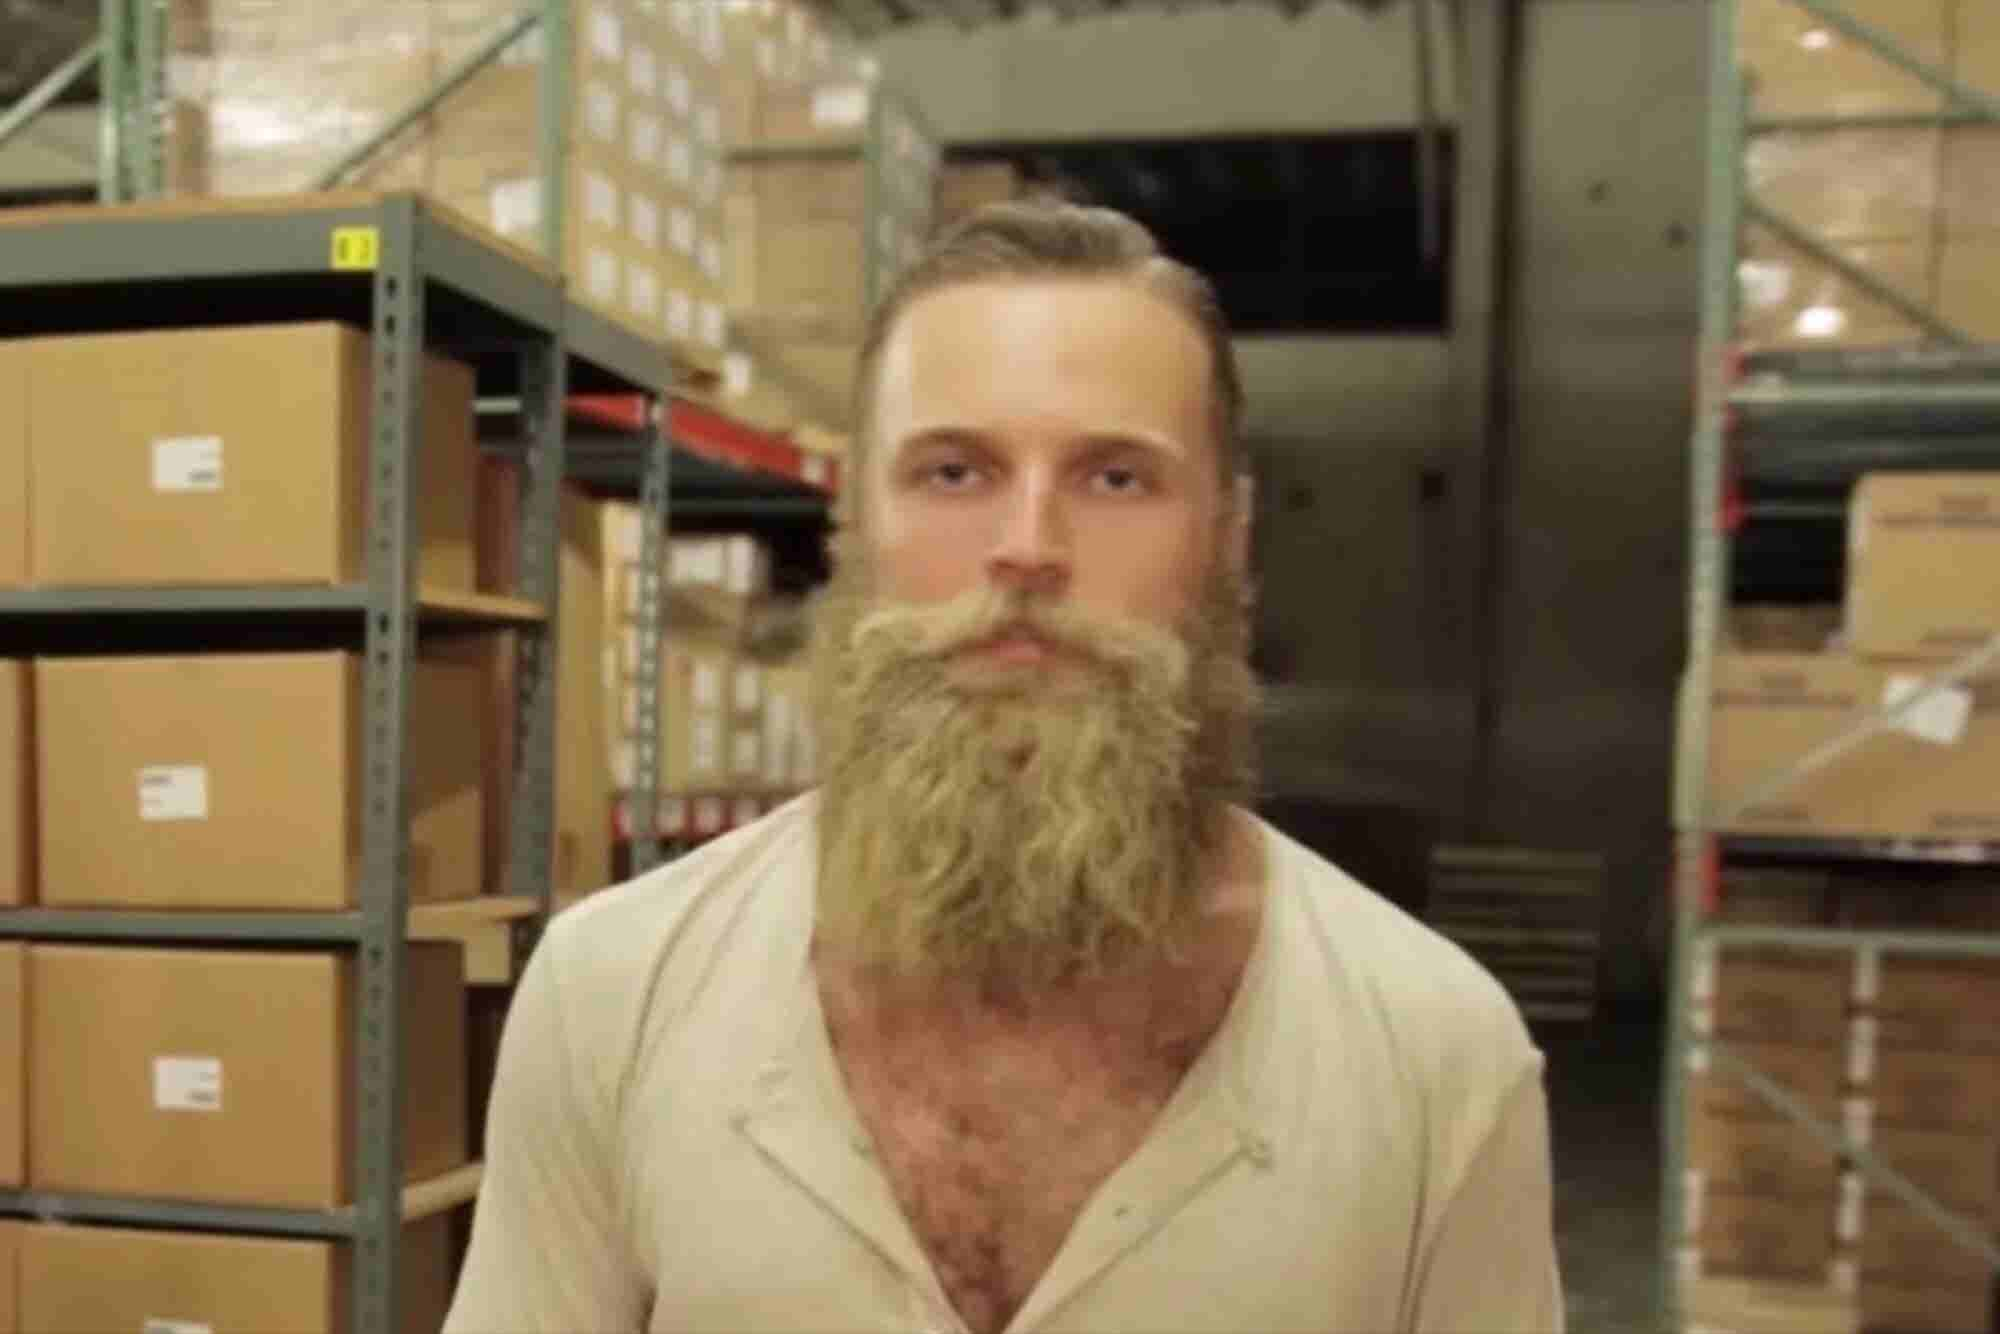 8 Hairy Lessons From a Parody Startup That's All About Beards